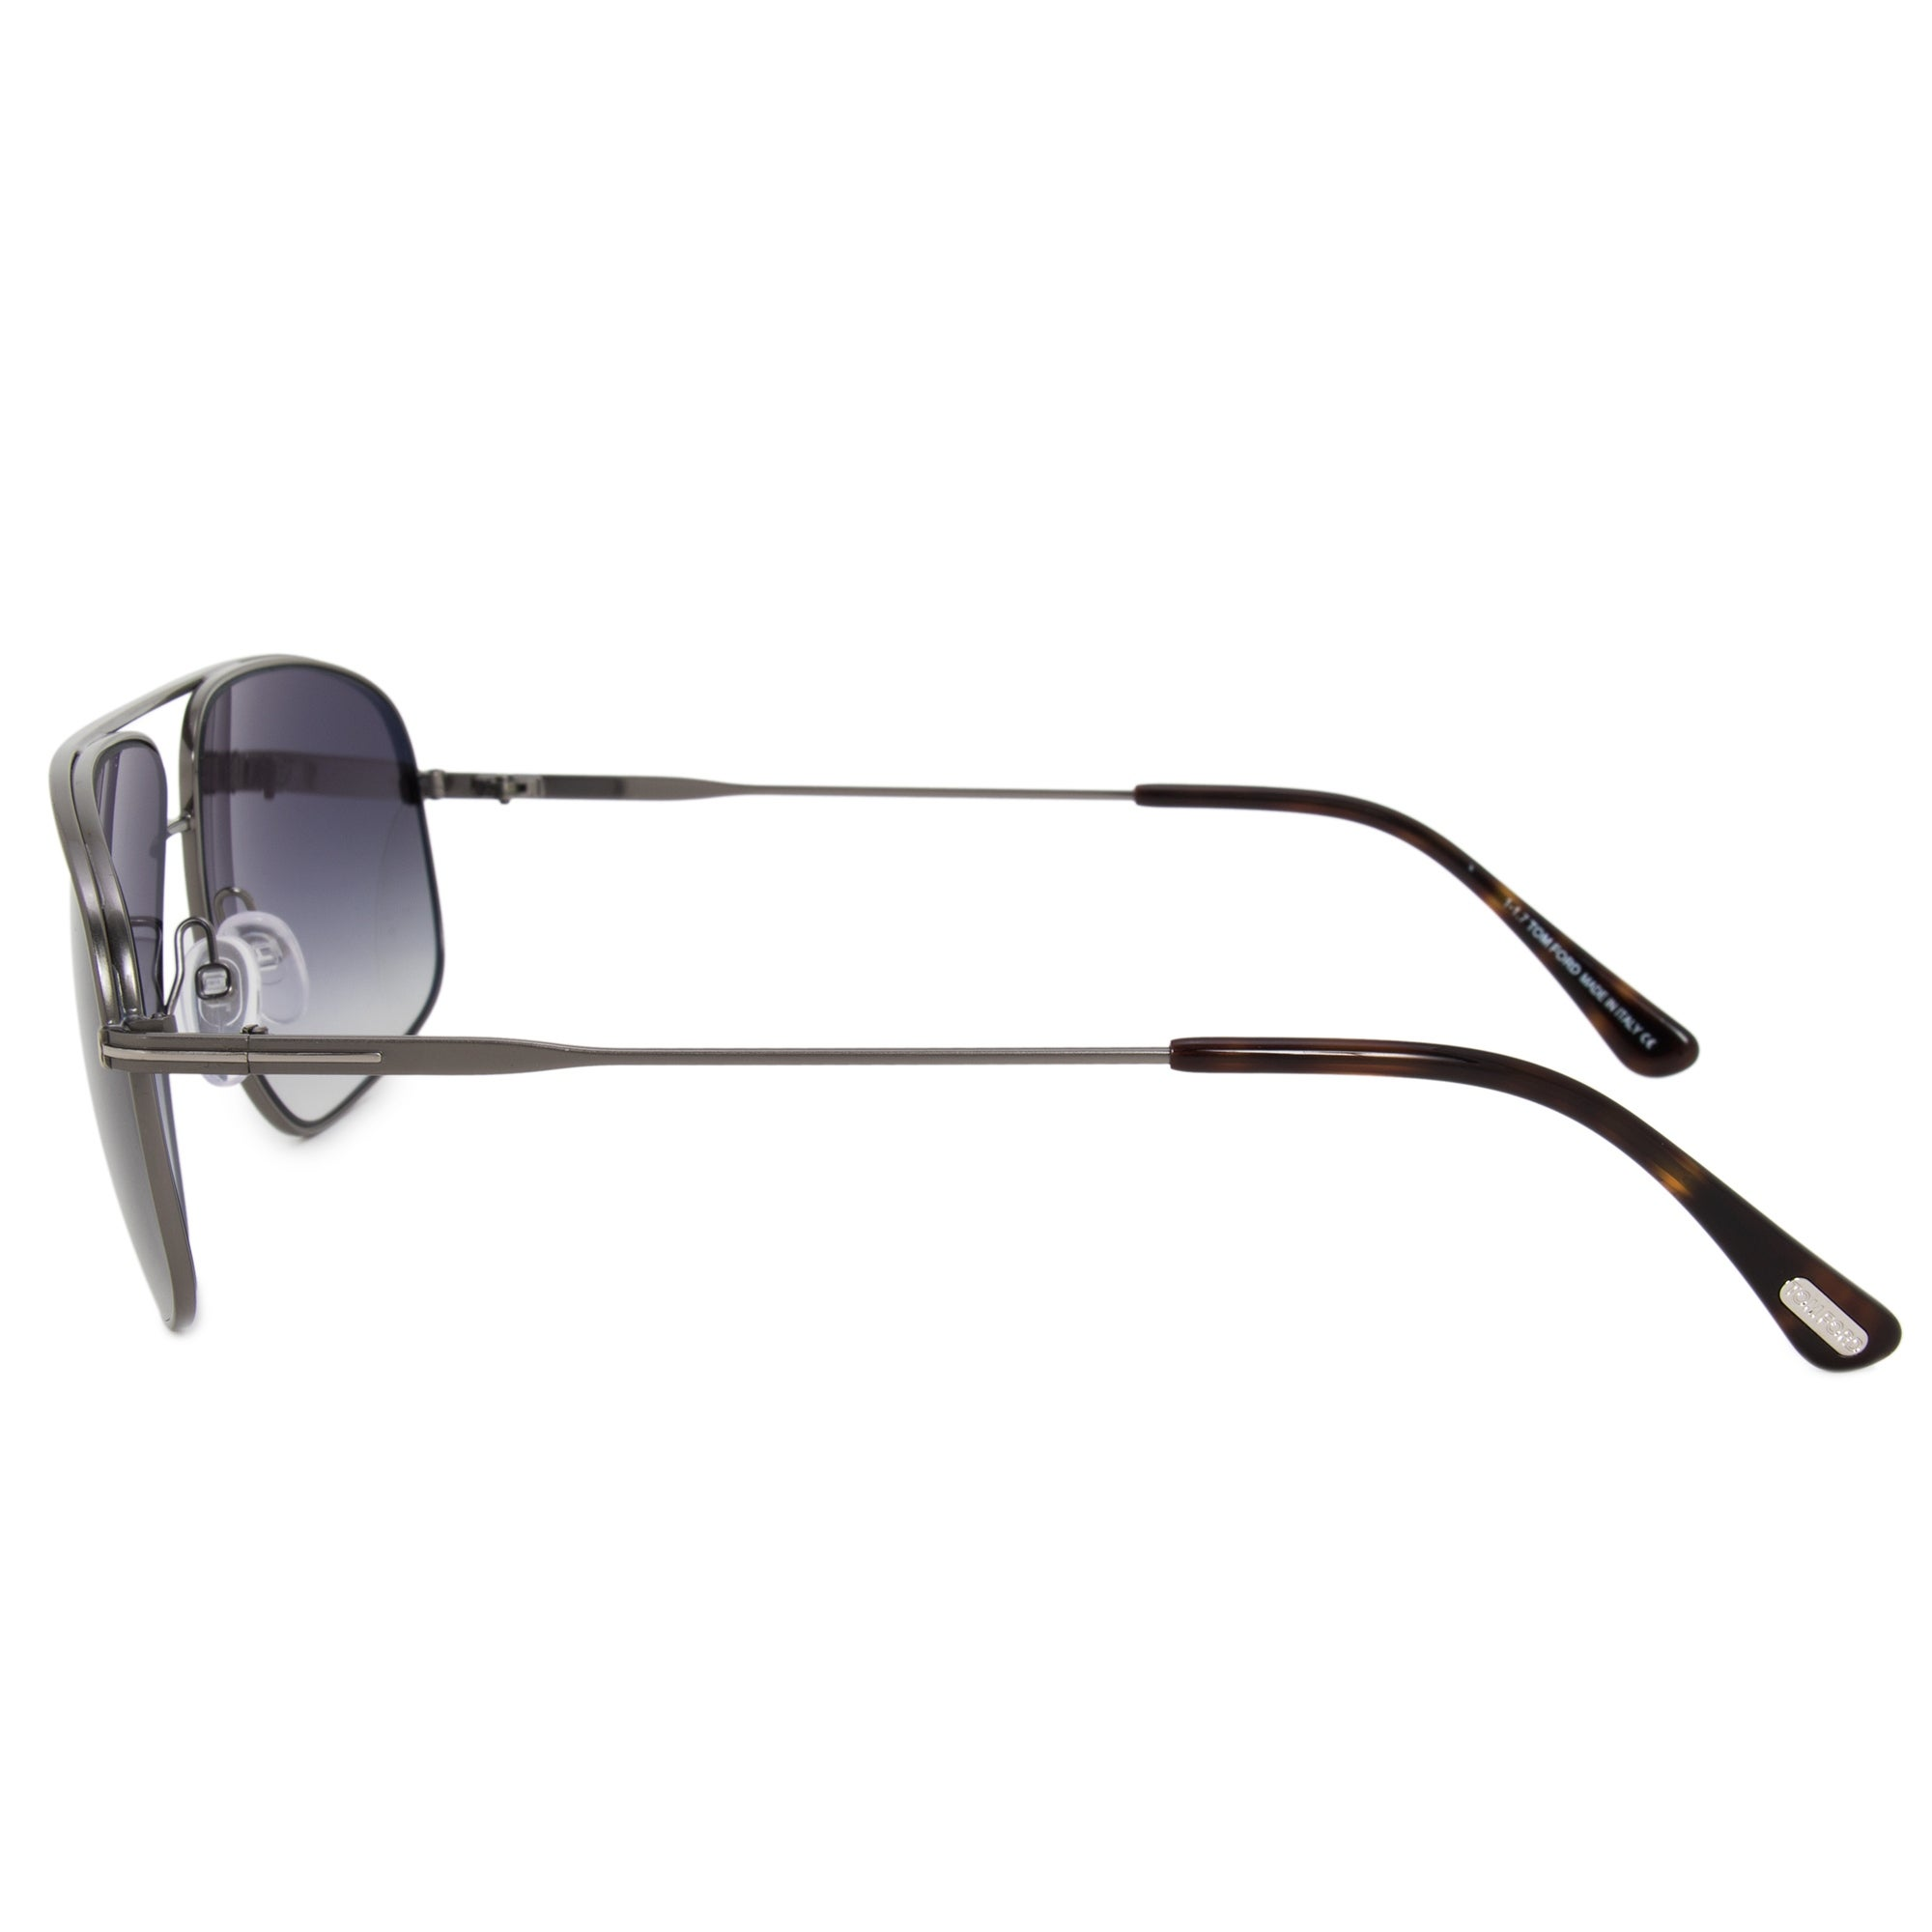 148f25402c25 Shop Tom Ford Justin Pilot Sunglasses FT0467 13B 60 - Free Shipping Today -  Overstock - 21408826